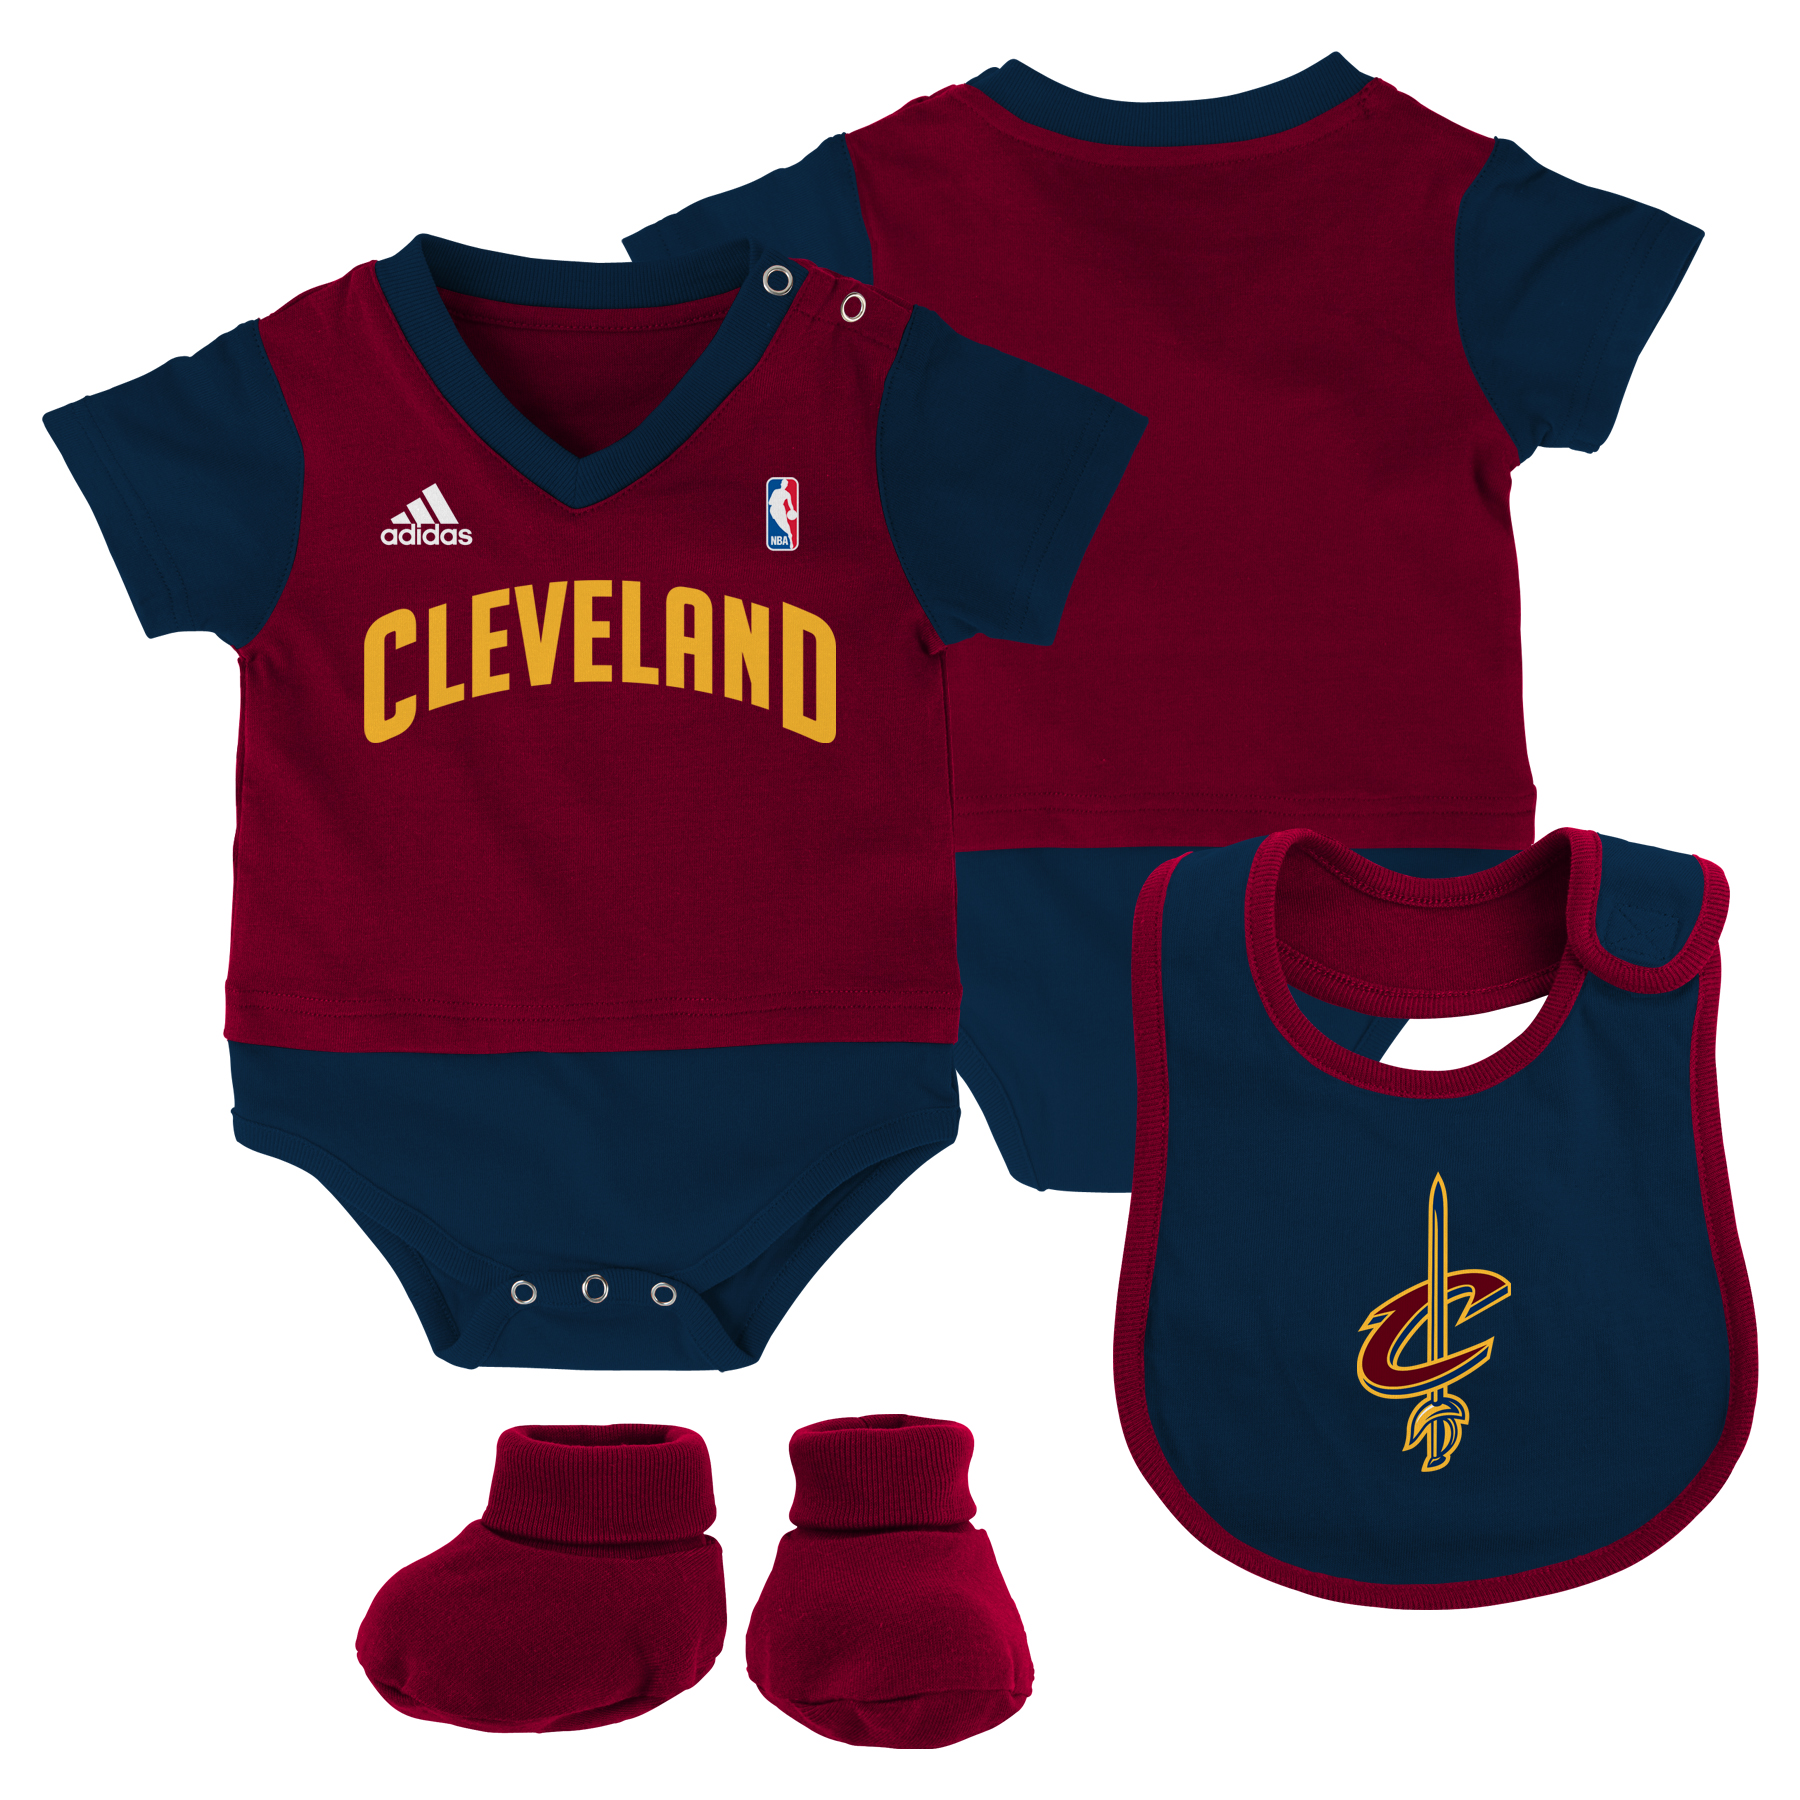 Cleveland Cavaliers Lil Jersey Baby Set - New Born